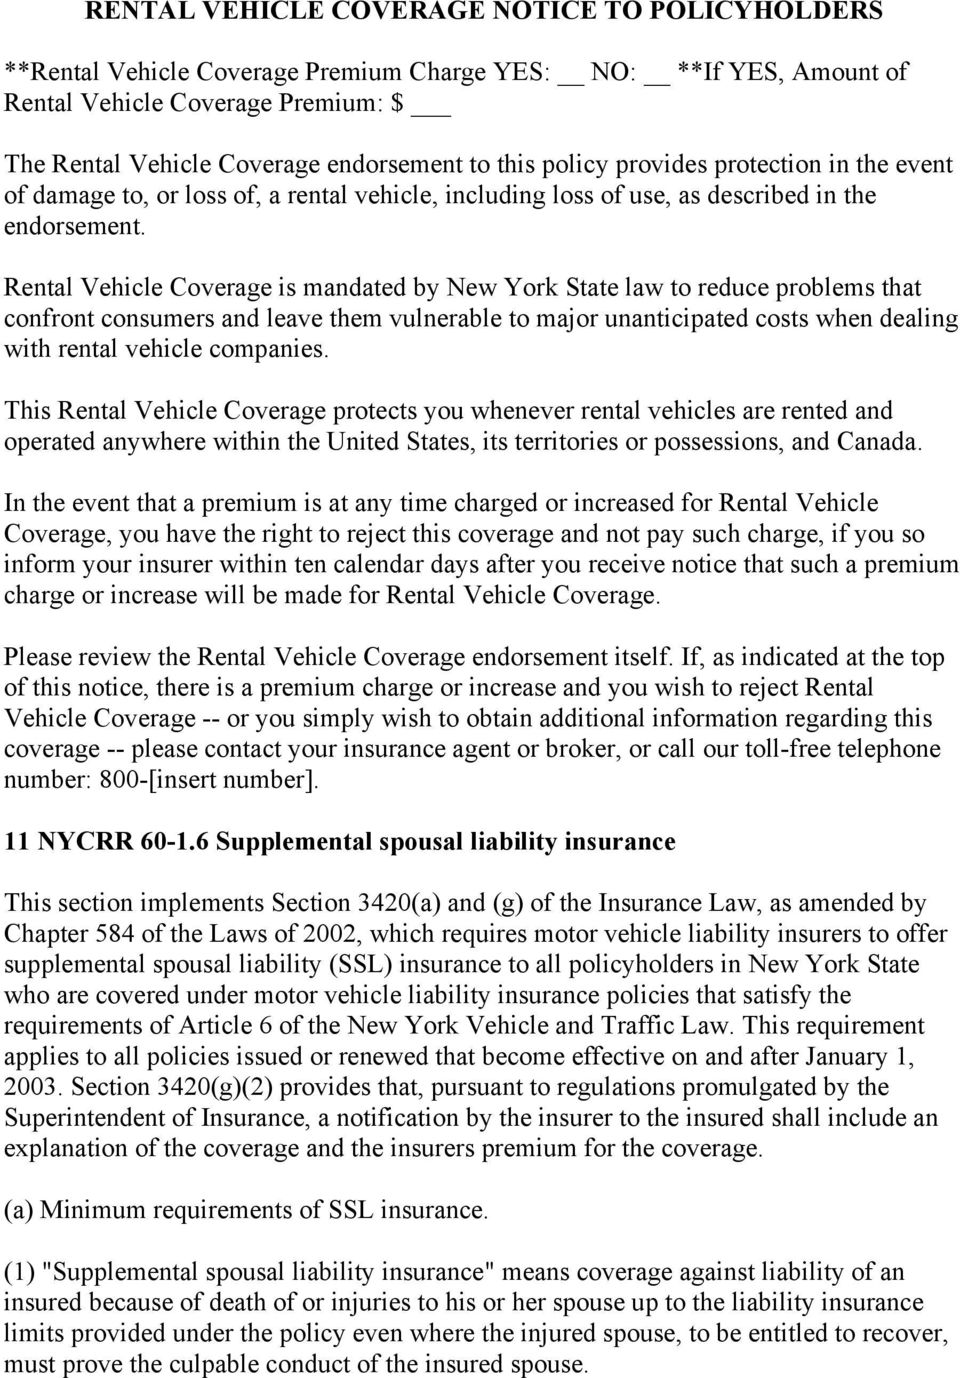 Rental Vehicle Coverage is mandated by New York State law to reduce problems that confront consumers and leave them vulnerable to major unanticipated costs when dealing with rental vehicle companies.